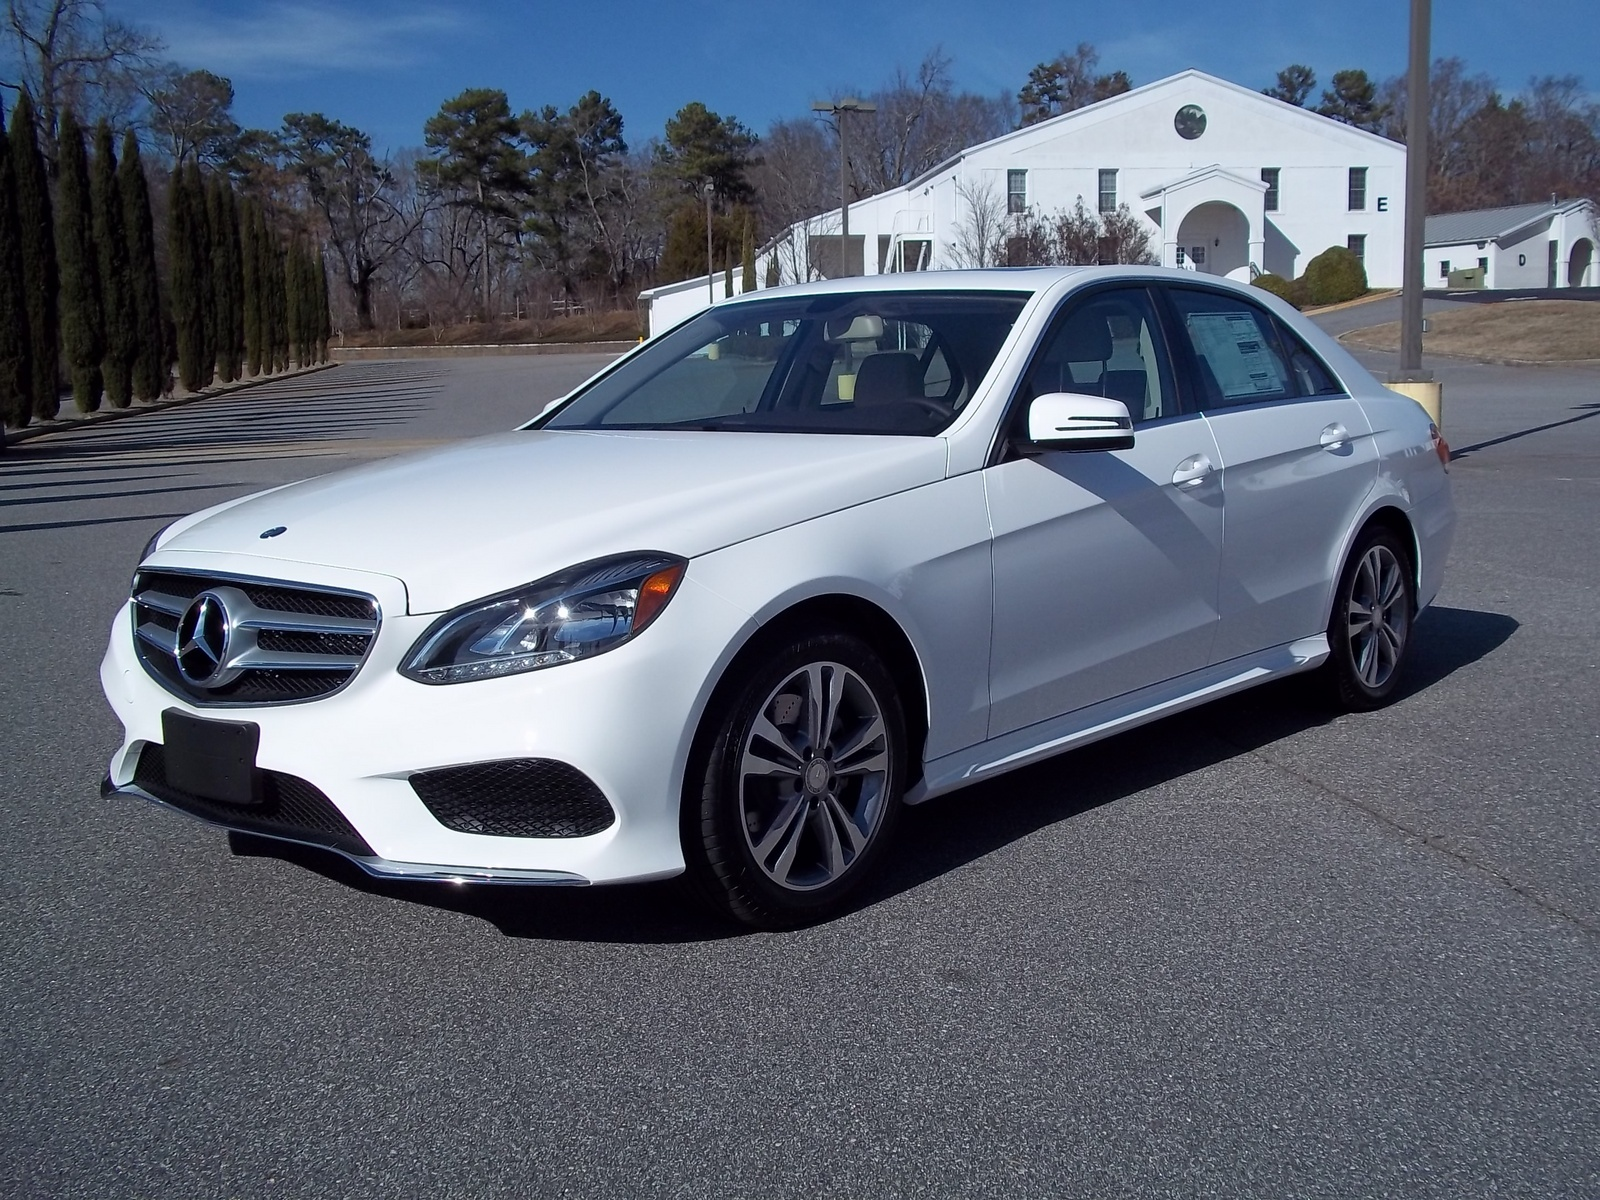 New 2015 2016 mercedes benz e class for sale cargurus for Mercedes benz new cars 2015